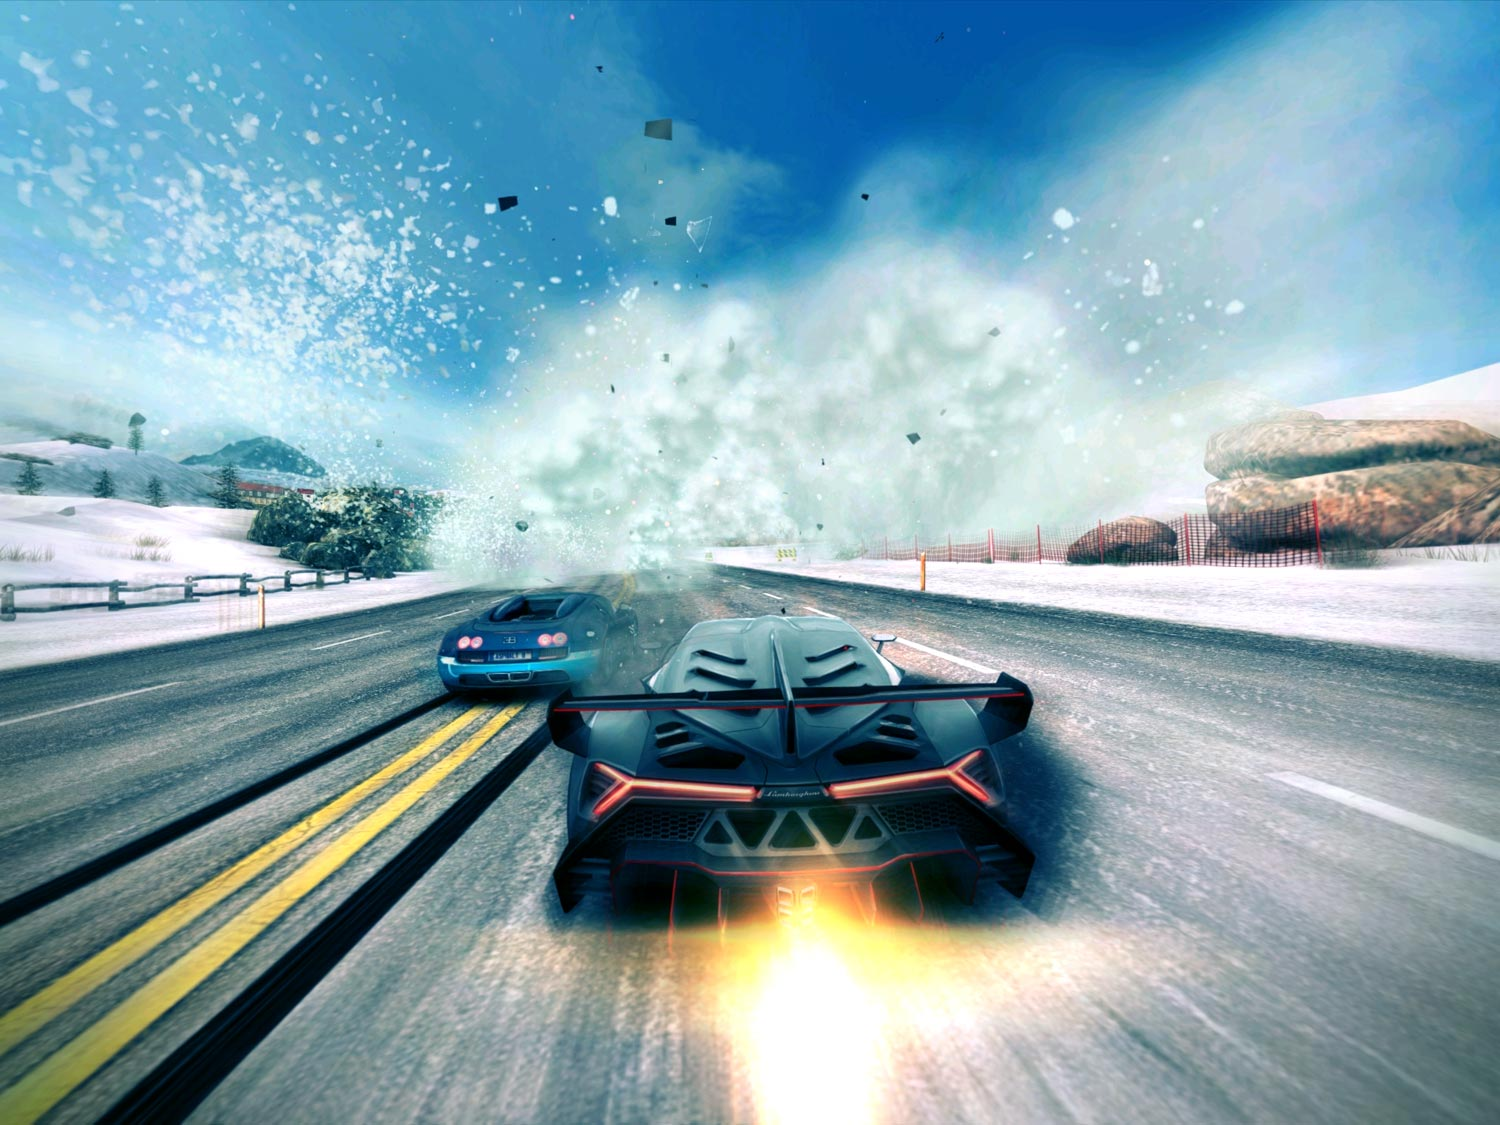 Asphalt 8: Airborne Trailer prepares for launch next week